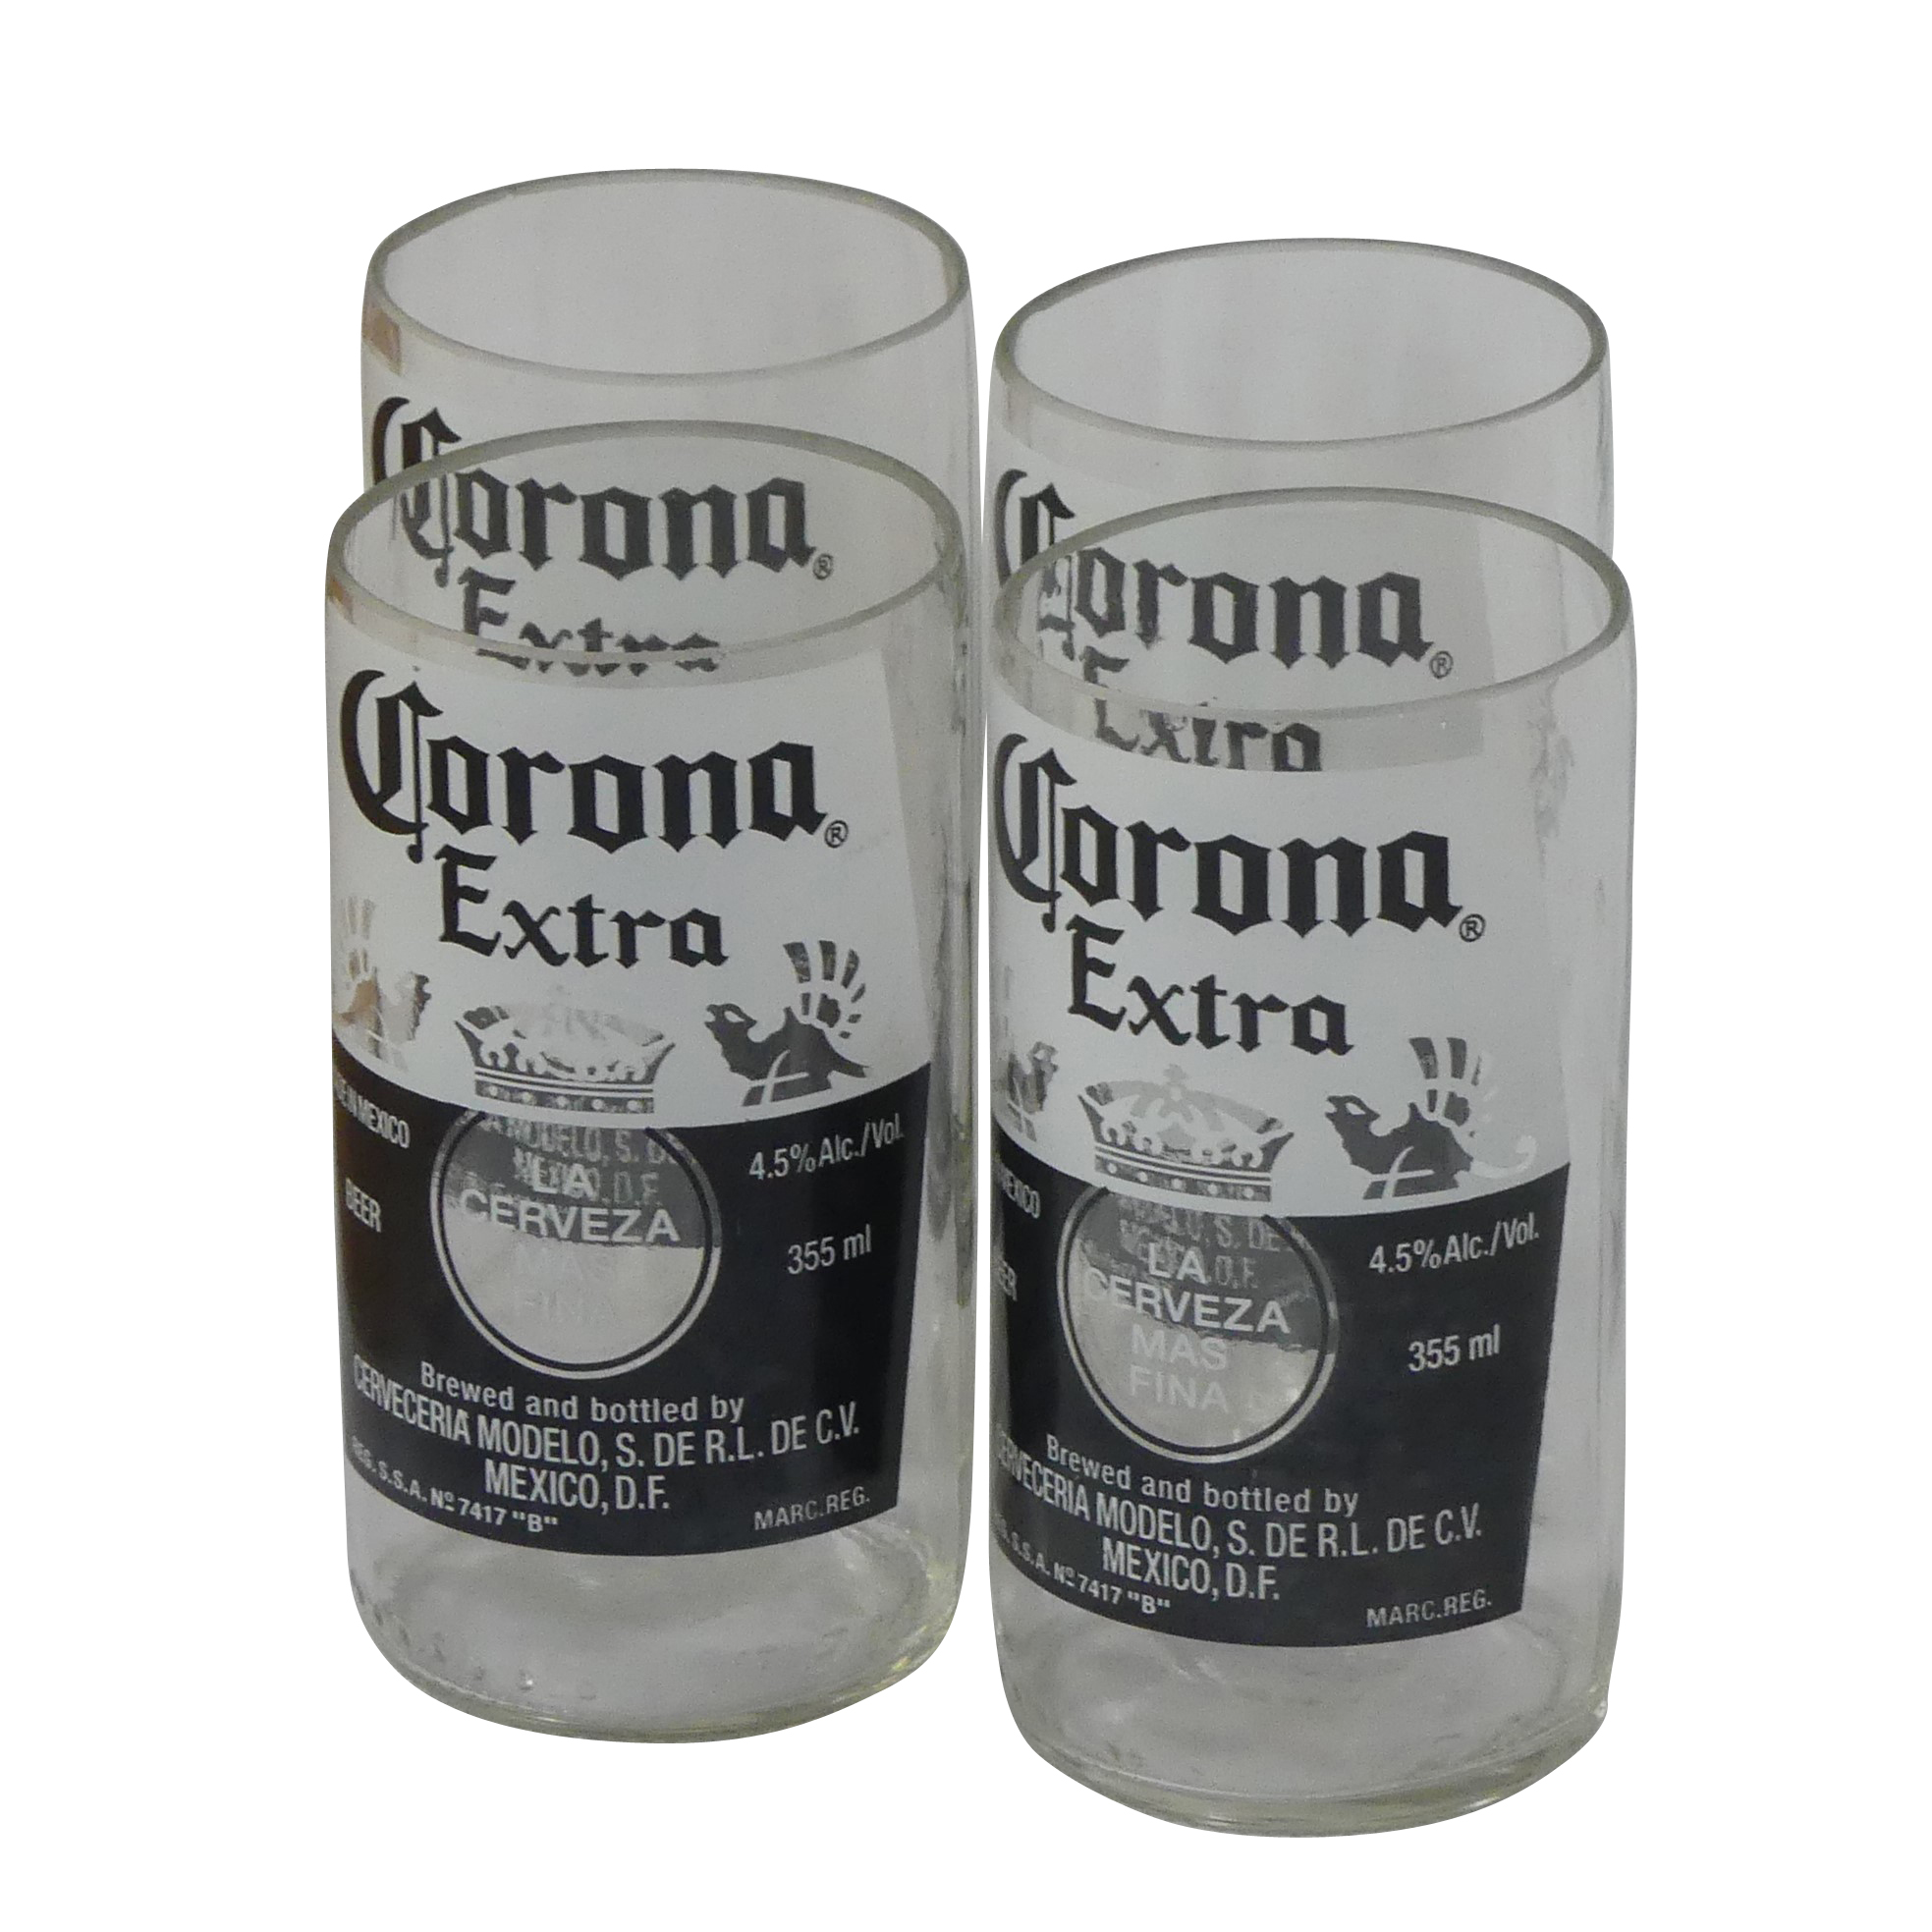 Upcycled corona glasses €24.90 - I am sure the drinks will be flowing throughout the Xmas season, so why not give this awesome set of glasses to your loved one.Made from used Corona bottles, this gift is both thoughtful and stylish. They also have other styles, but I love the logo on these. They are enough to style up any drink!